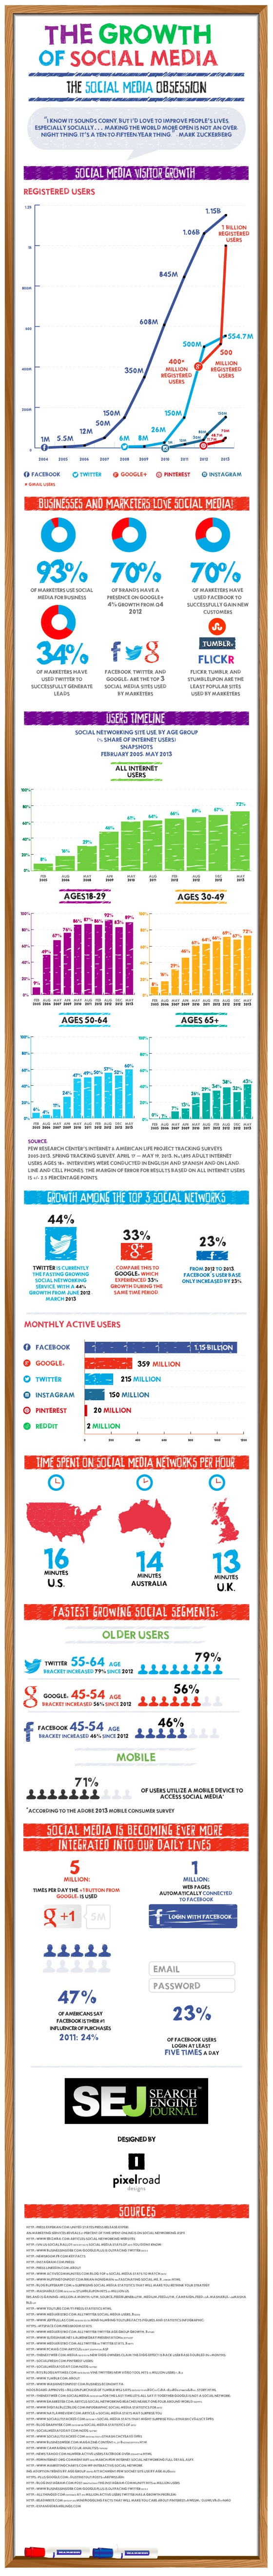 Growth-of-social-media-2013